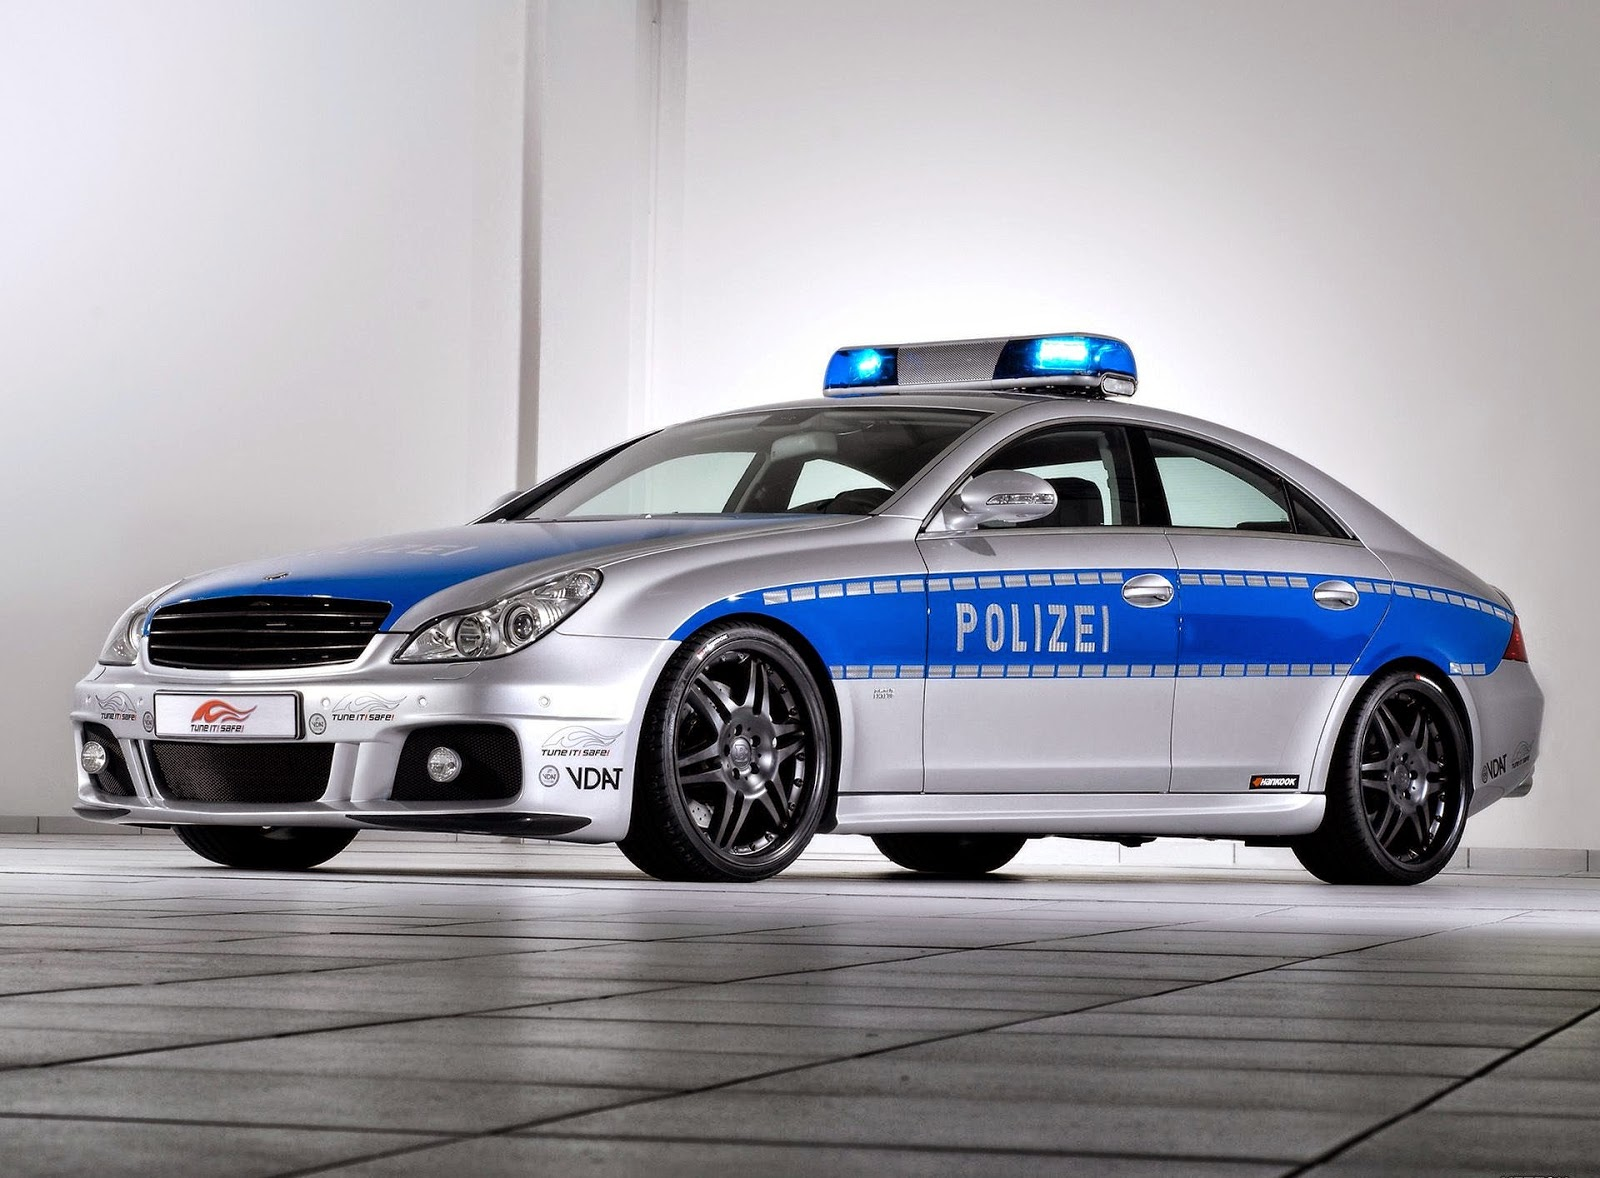 The Best Police Cars In The World 4 Countries With Fast Cop Cars